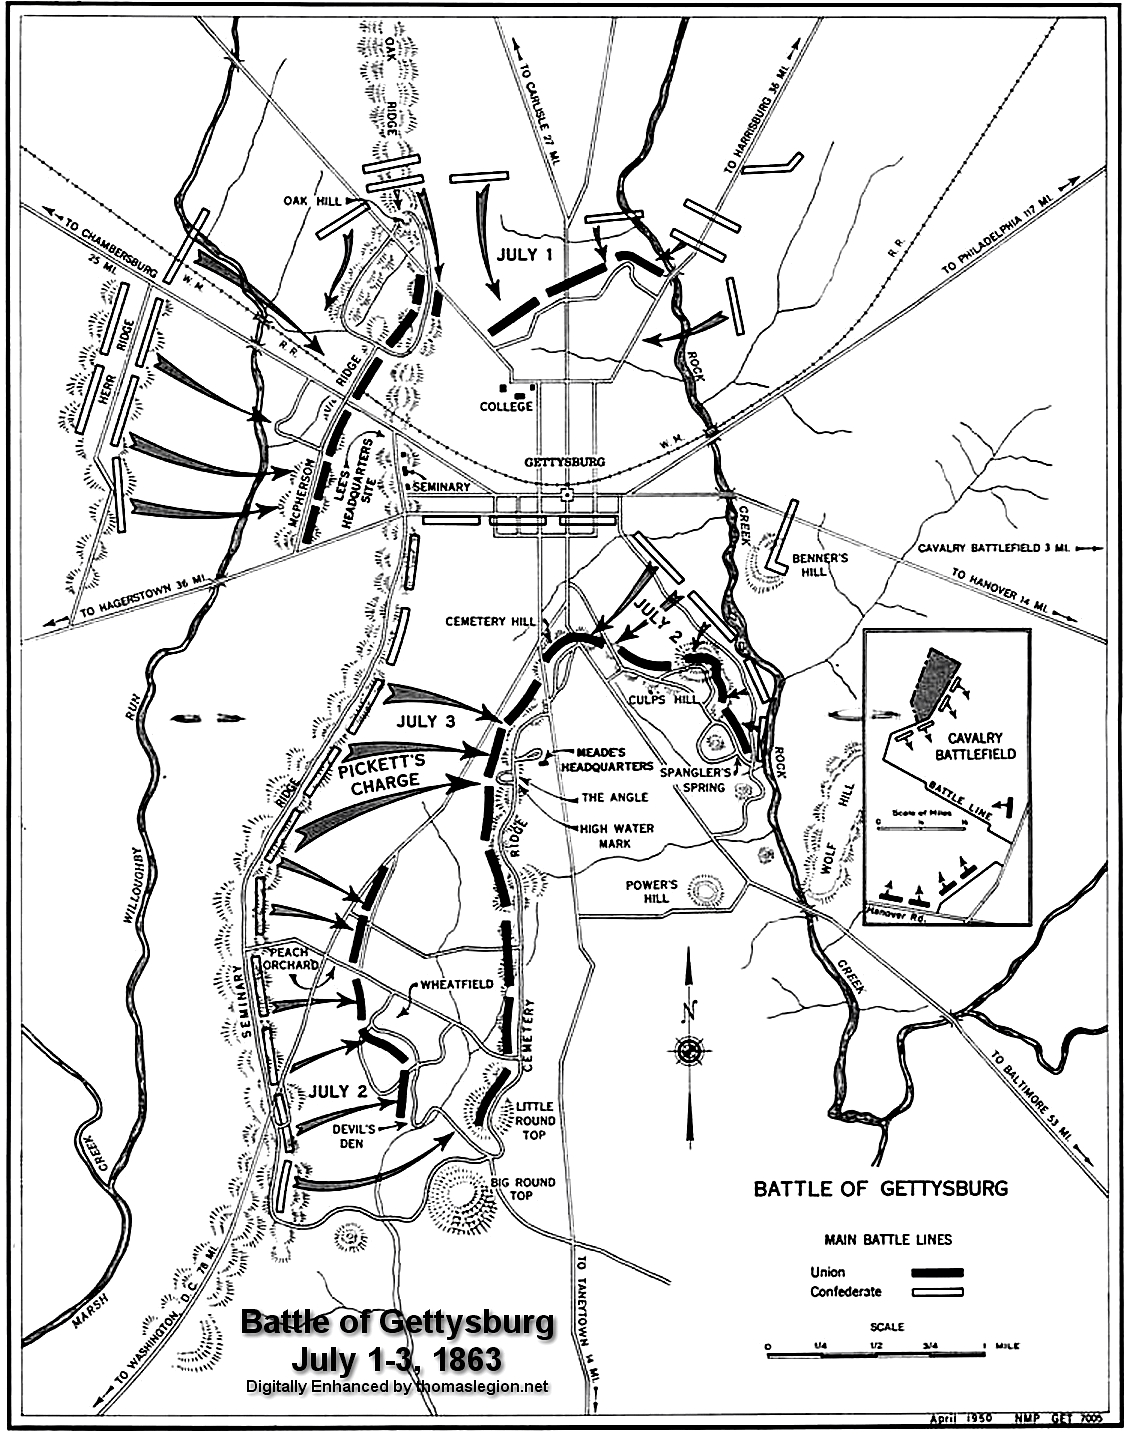 Civil War Battle of Gettysburg Map.gif